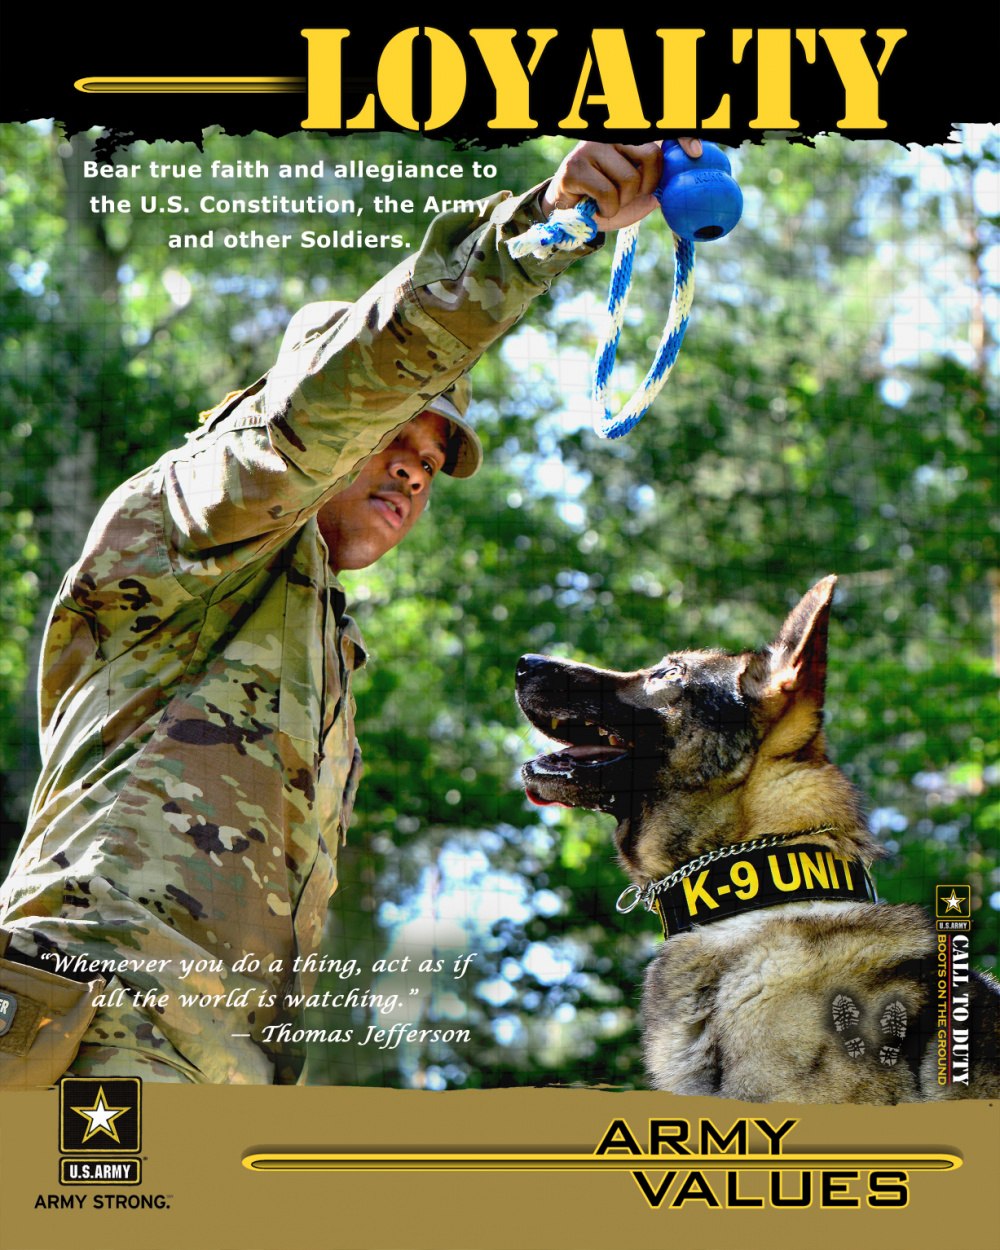 Army Values - Loyalty